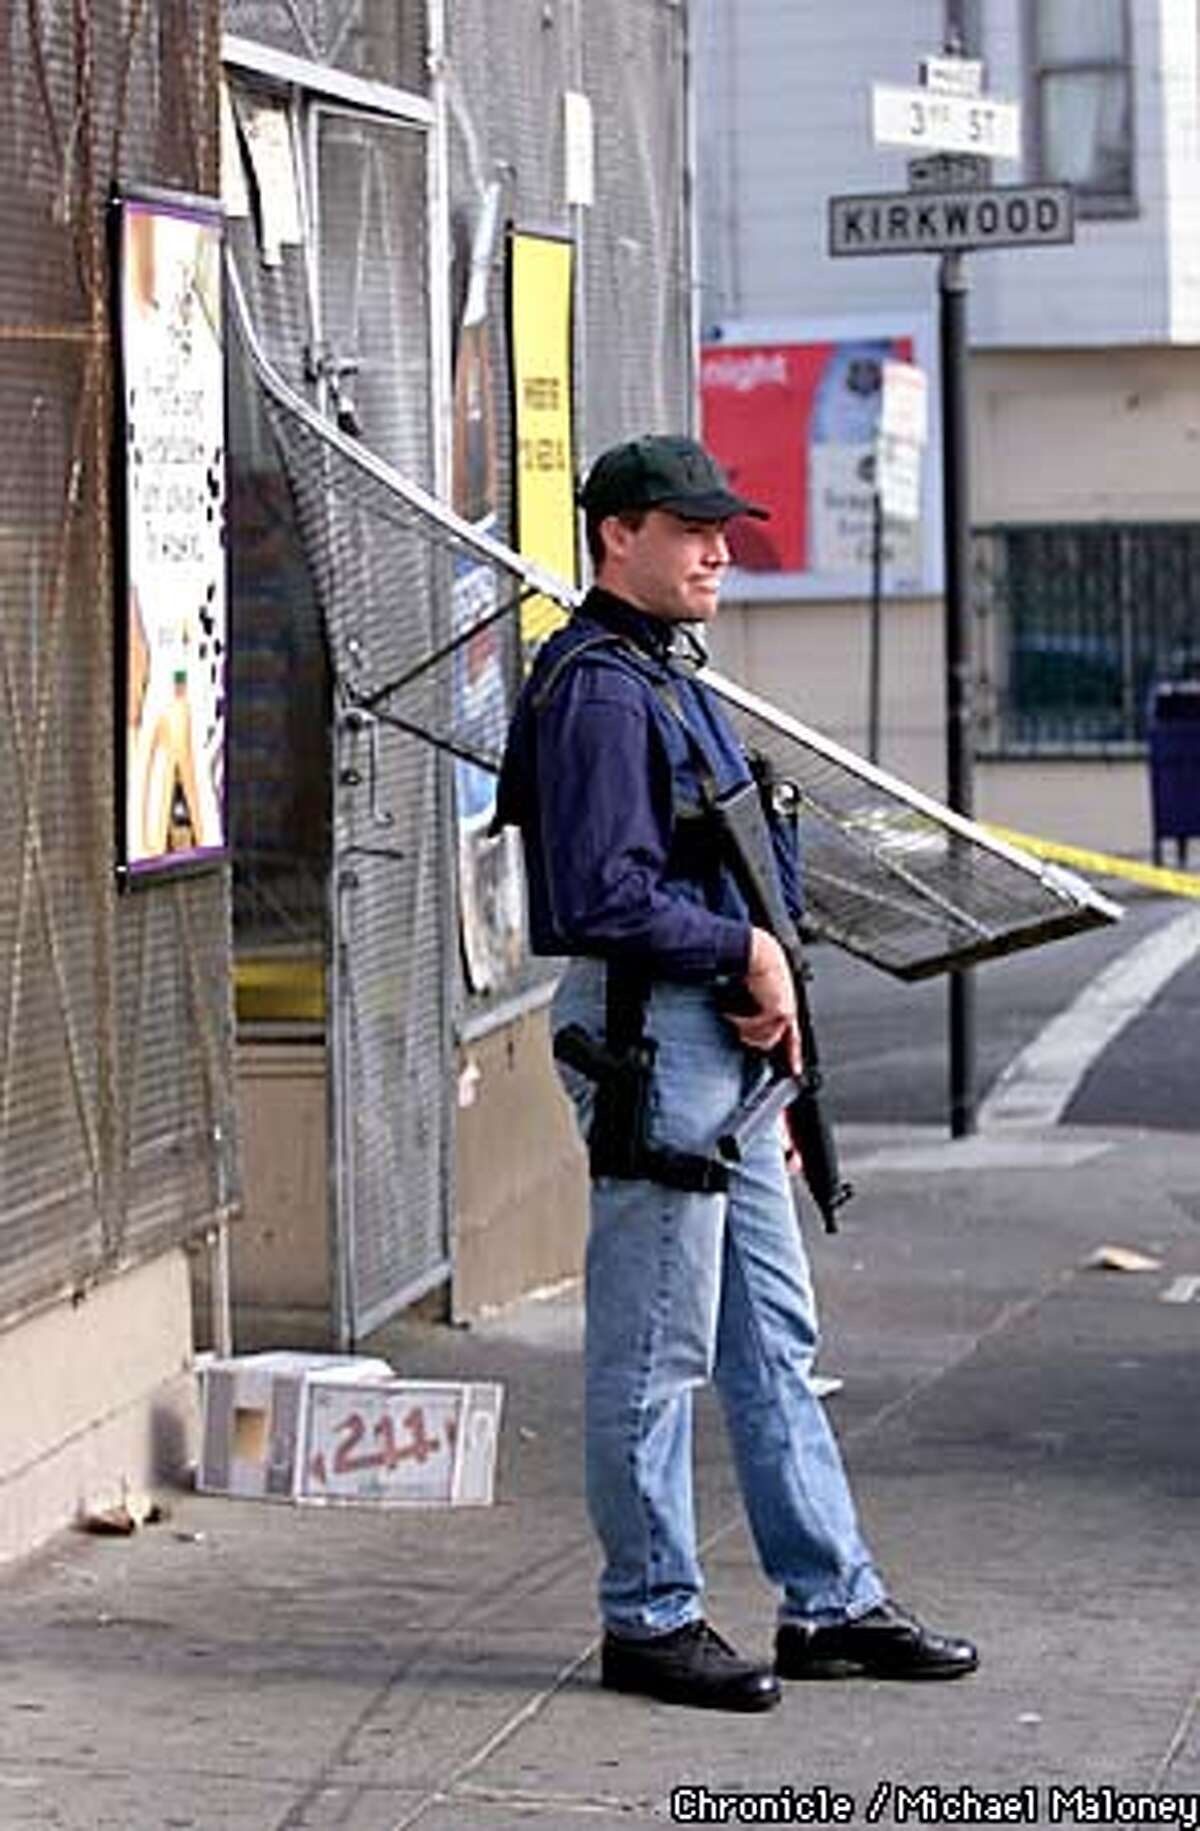 A heavily armed FBI agent stands guard outside the forced entryway of the Star Market at 4400 3rd Street in SF. SFPD and FBI agents were inside searching the liquor/grocery store. Starting at 6am this morning, nearly 200 FBI and bay area police officers carried out numerous search and arrest warrants to apprehend drug and weapons violators in SF and other bay area cities. CHRONICLE PHOTO BY MICHAEL MALONEY